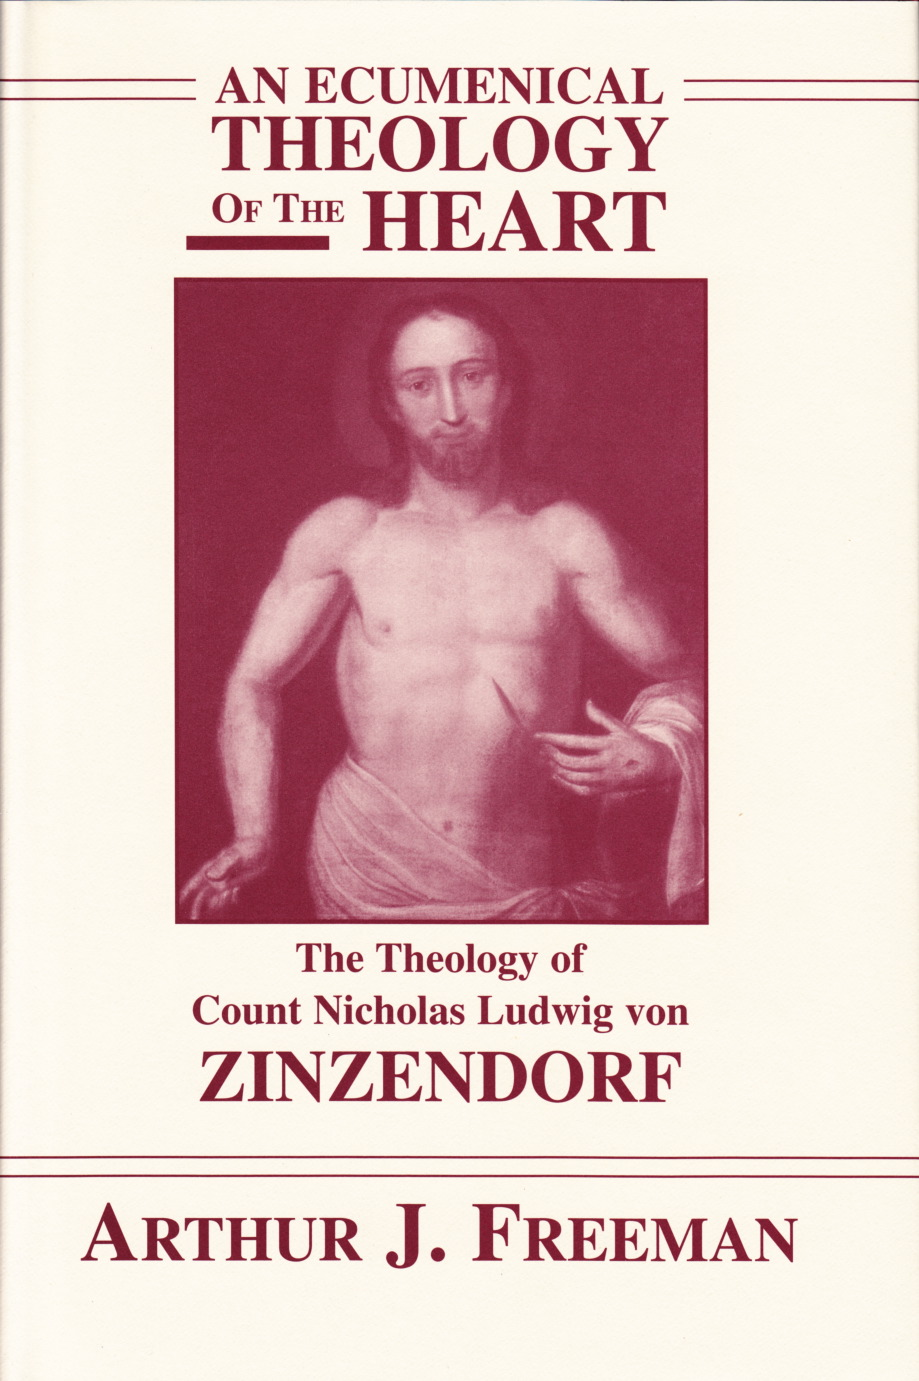 An Ecumenical Theology of the Heart - Hardcover Edition